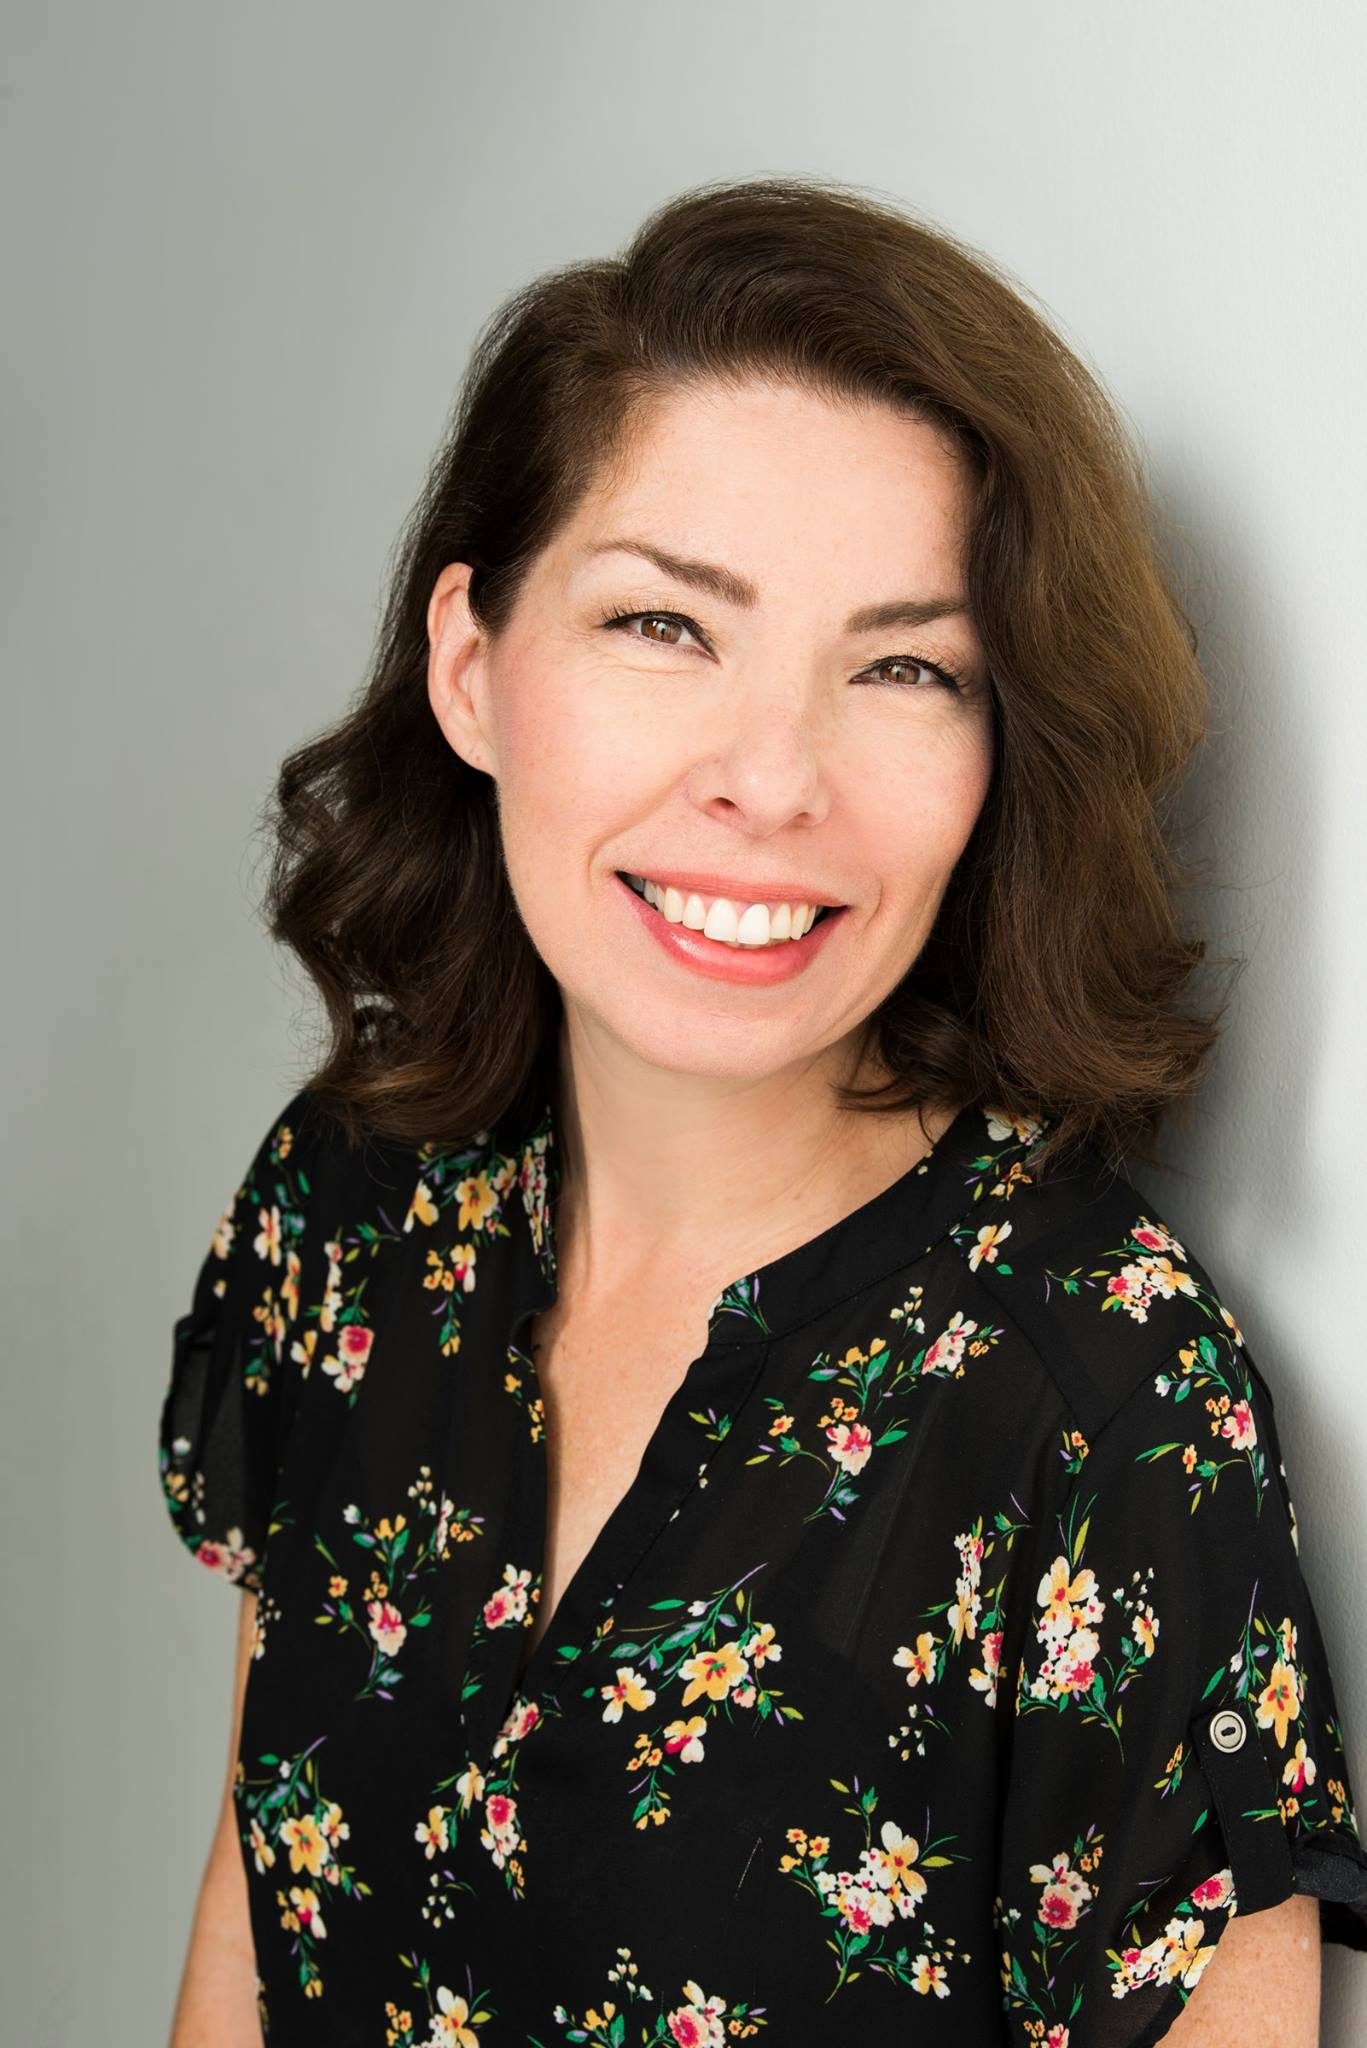 Anita Wittenberg - MotherAnita is so happy to be a part of this cast exploring the work of American playwright, Will Eno. Some recent credits: The Curious Incident of the dog in the Night-time ( Arts Club), Silent Sky ( Chemainus Theatre Festival), Holy Mo! A Christmas Show! (Pacific Theatre), The Cure for Death by Lightning ( Western Canada Theatre), Blithe Spirit ( Thousand Islands Playhouse) and for TV: The Chilling Adventures of Sabrina. Coming up next, White Noise ( Savage Society). 2019 marks Anita's 30th year as a professional actor. For C.